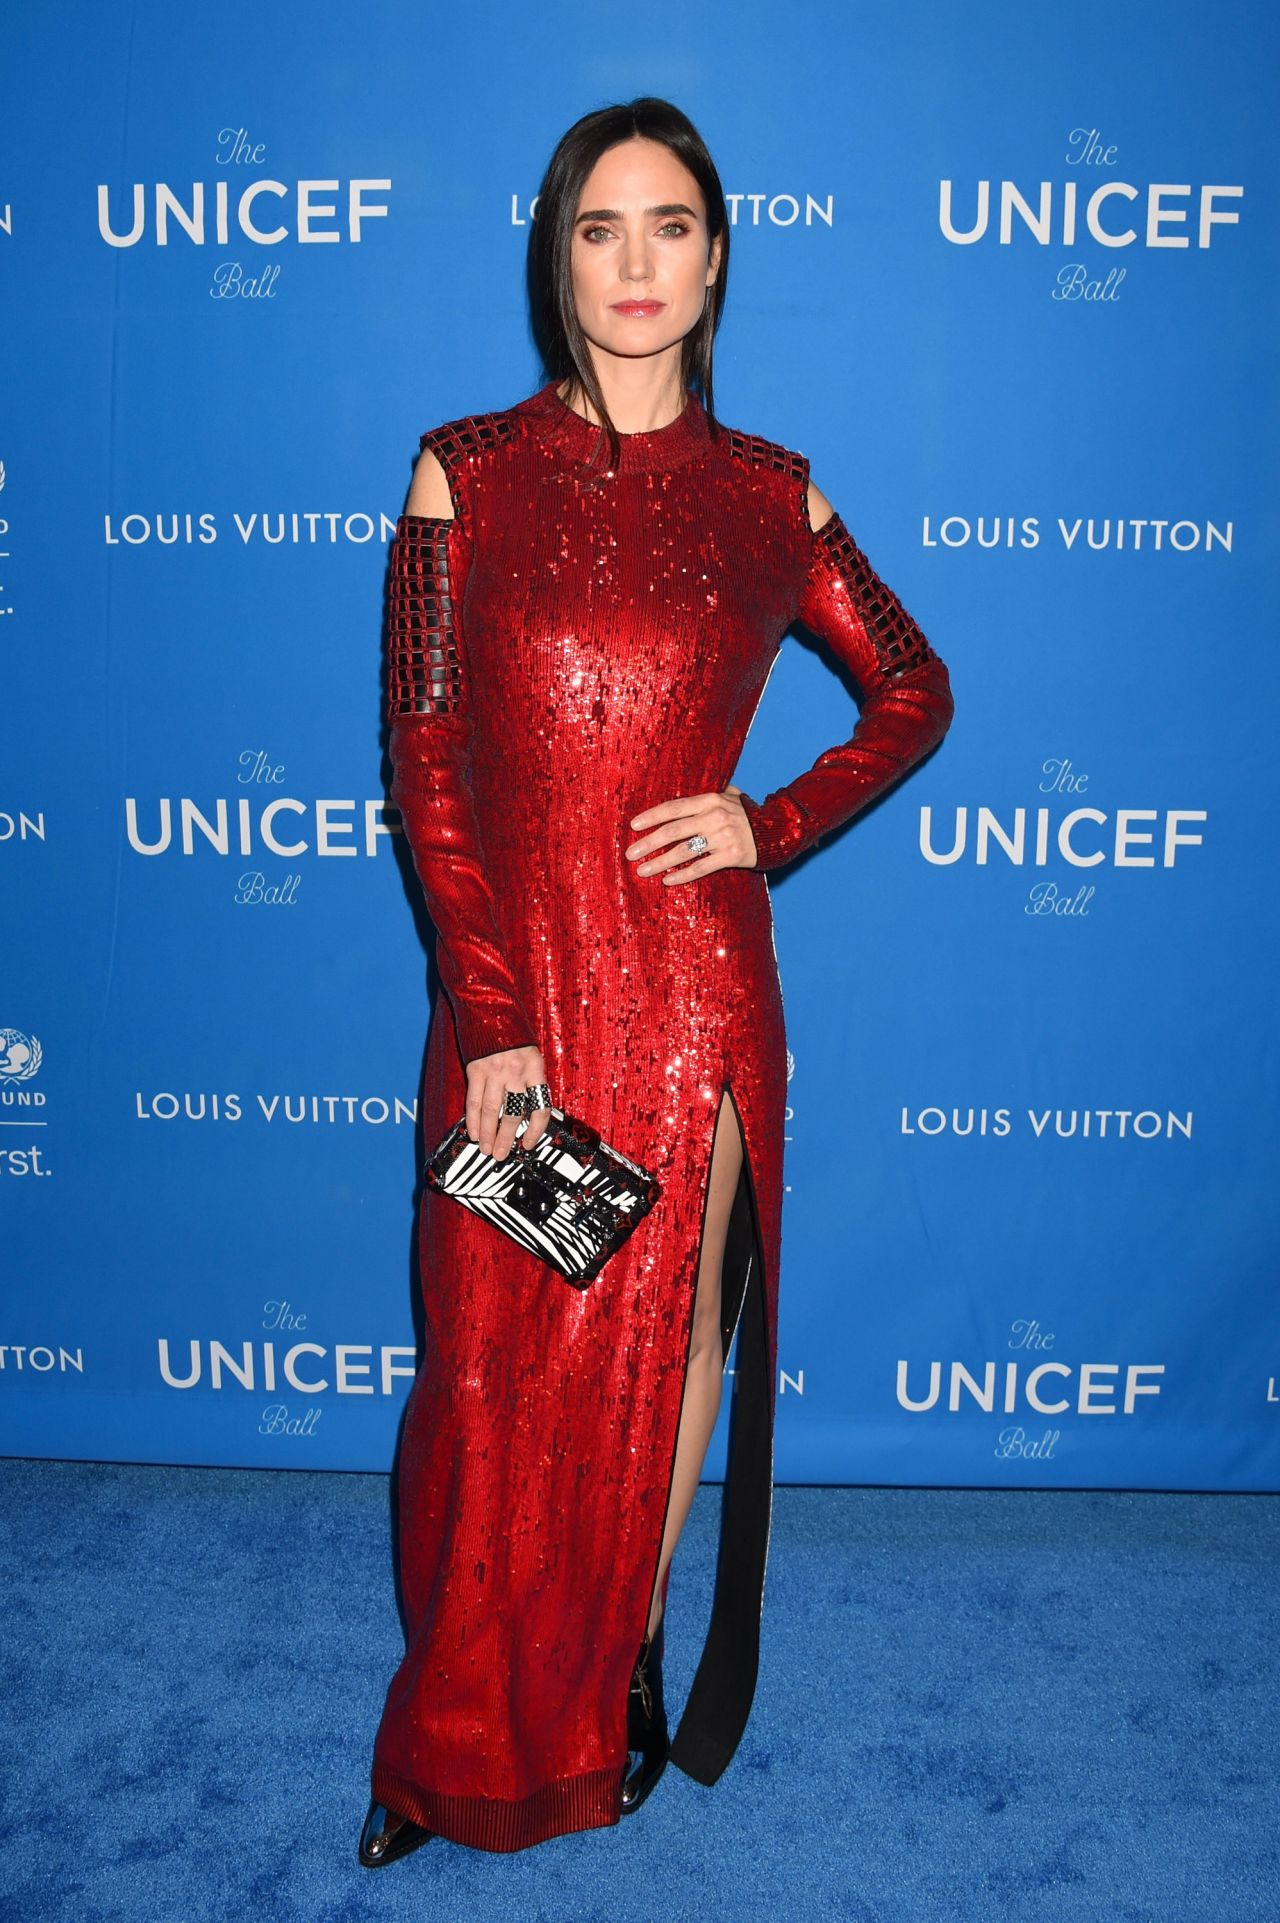 jennifer-connelly-6th-biennial-unicef-ball-in-beverly-hills-1-12-2016-1